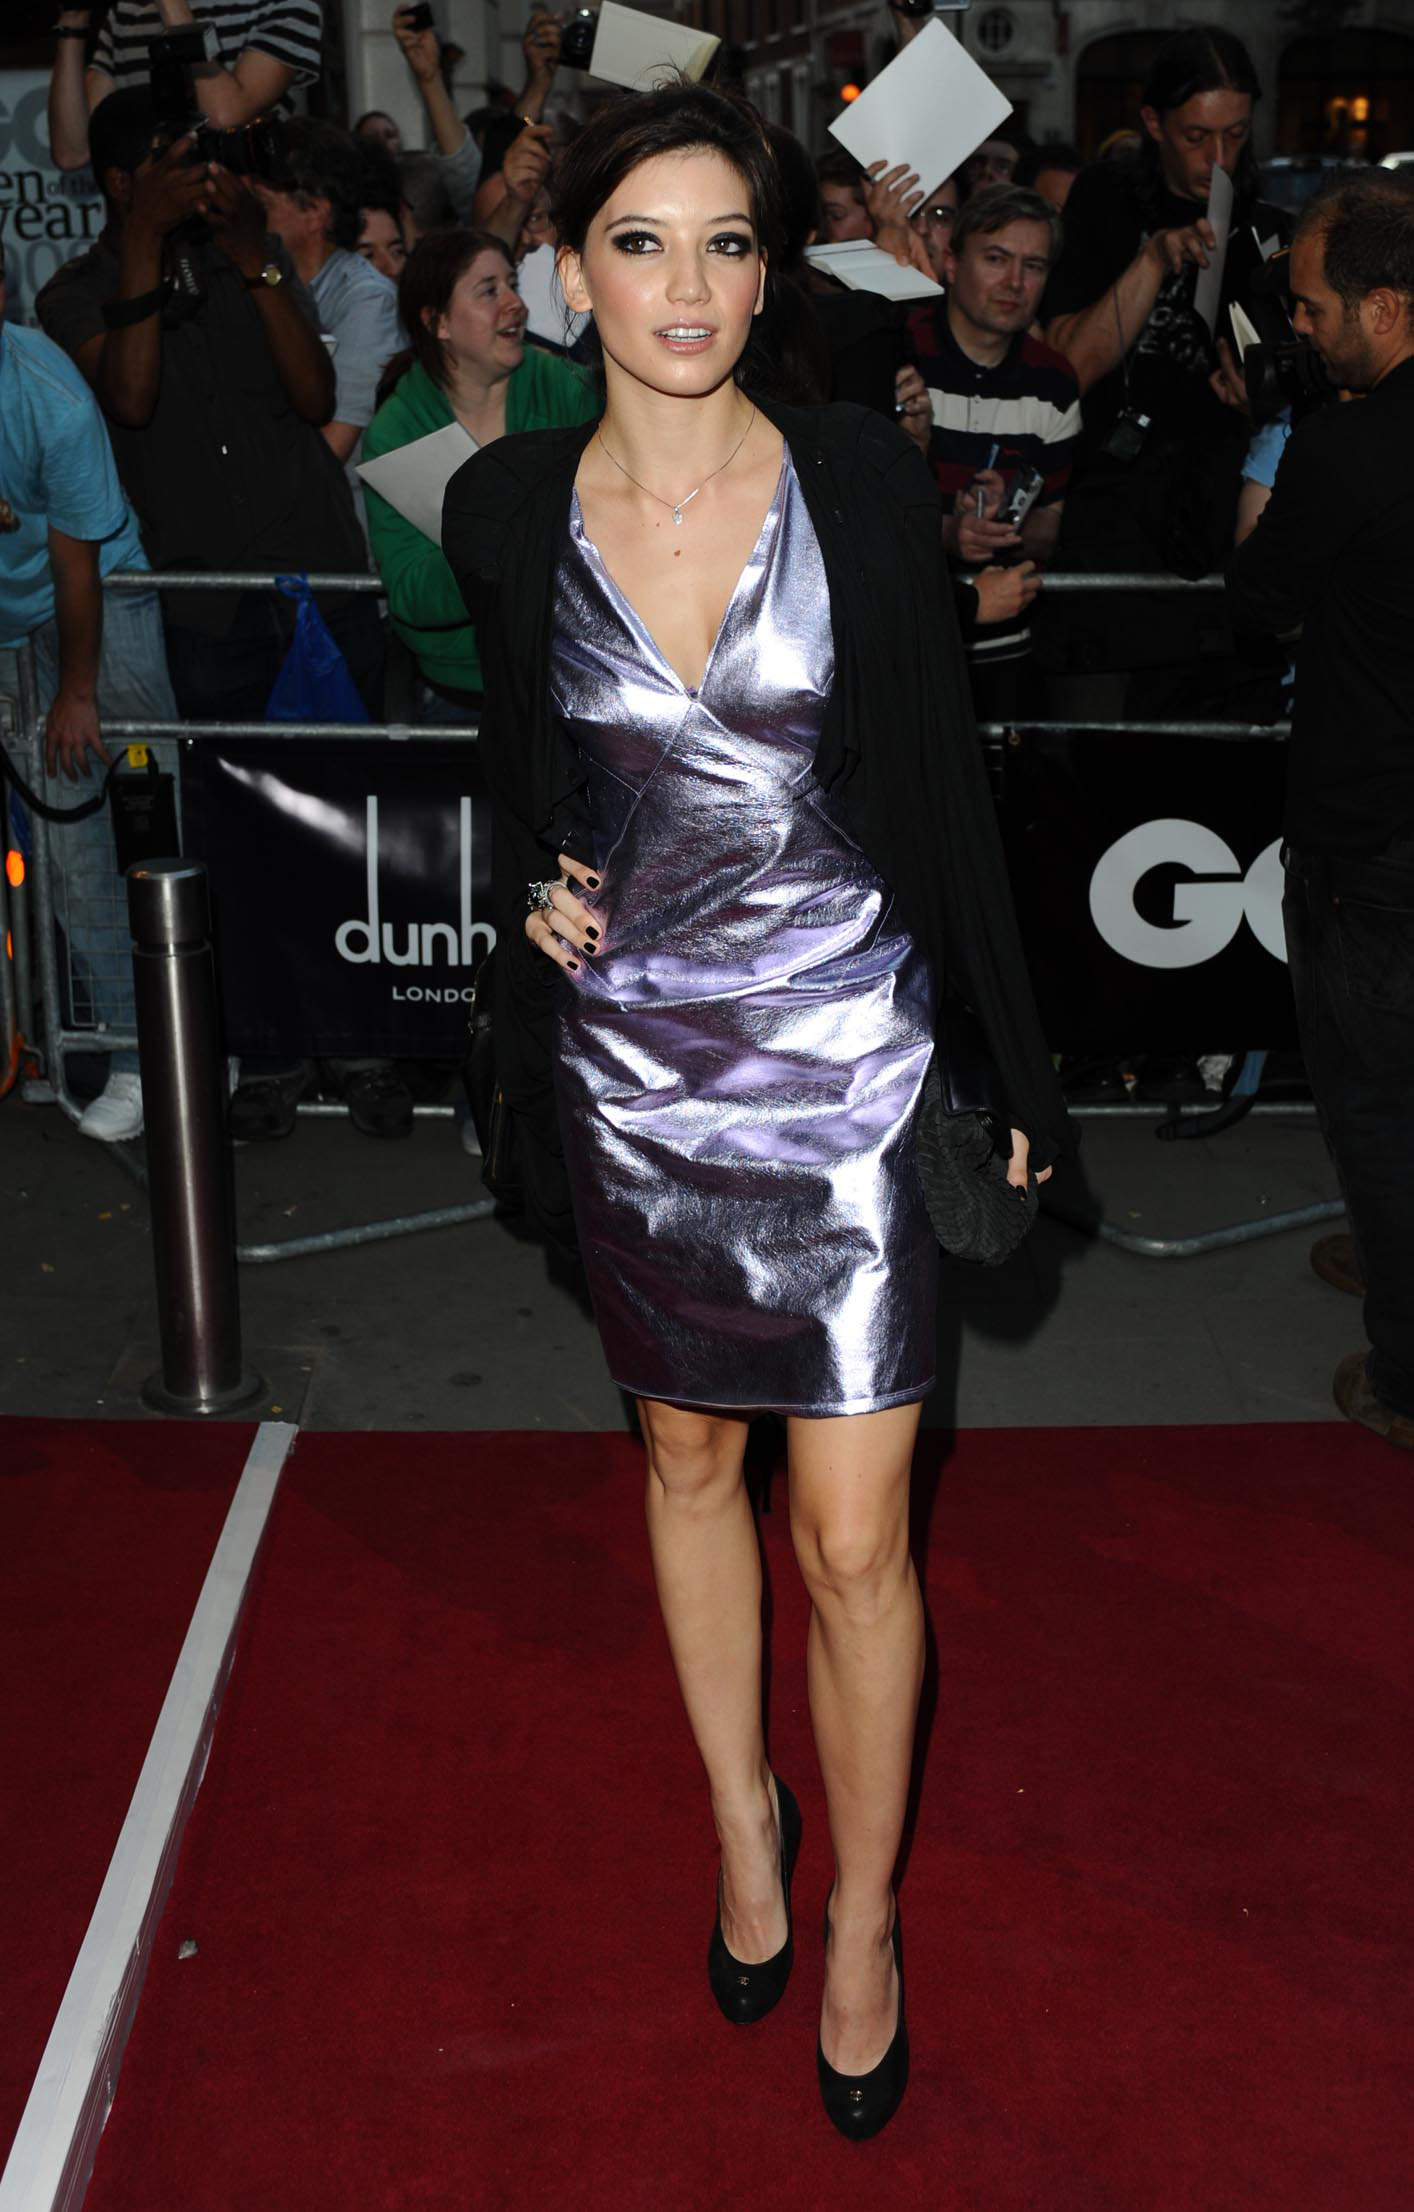 20168_Daisy_Lowe_-_GQ_Men_Of_The_Year_Awards_8th_Sept_2009_122_240lo.jpg